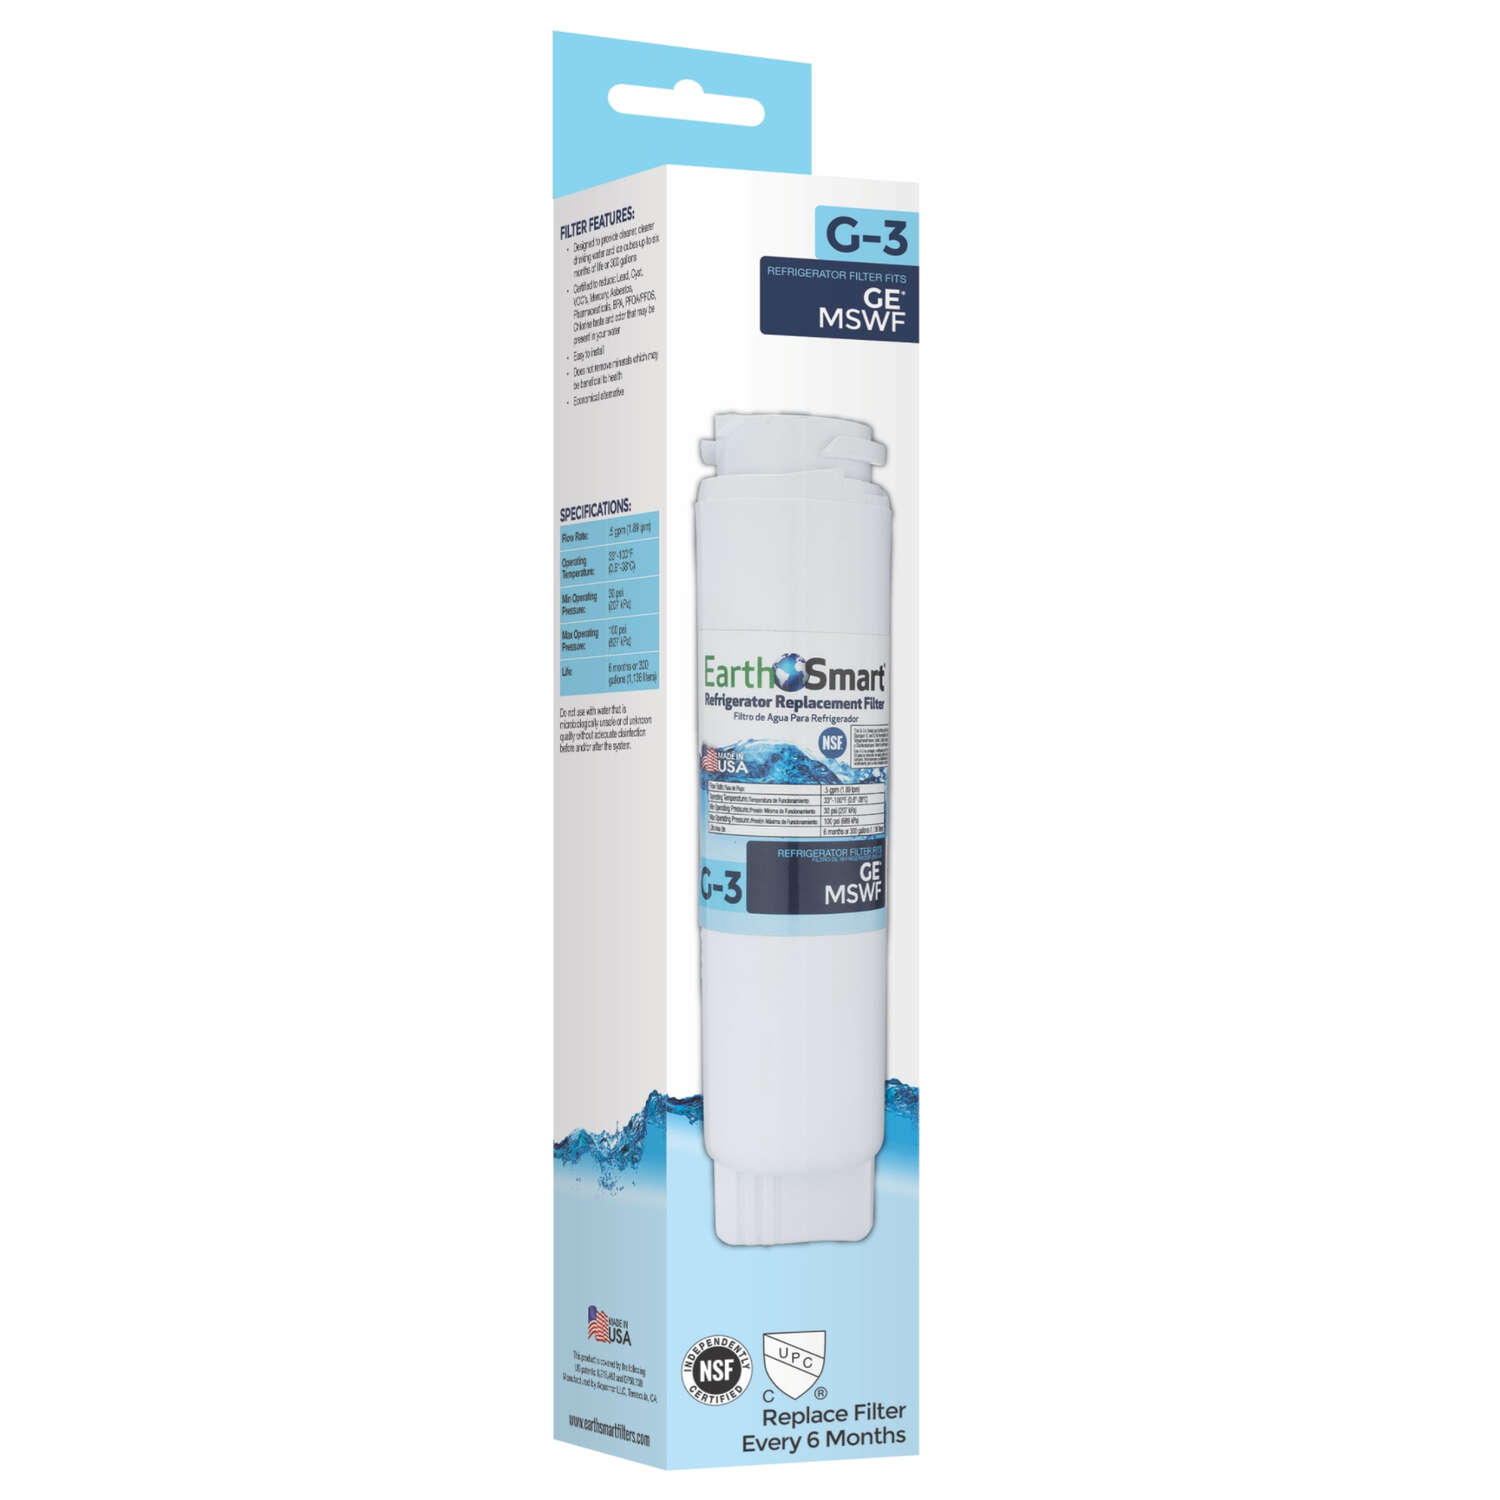 EarthSmart G-3 Refrigerator Replacement Filter For GE MSWF